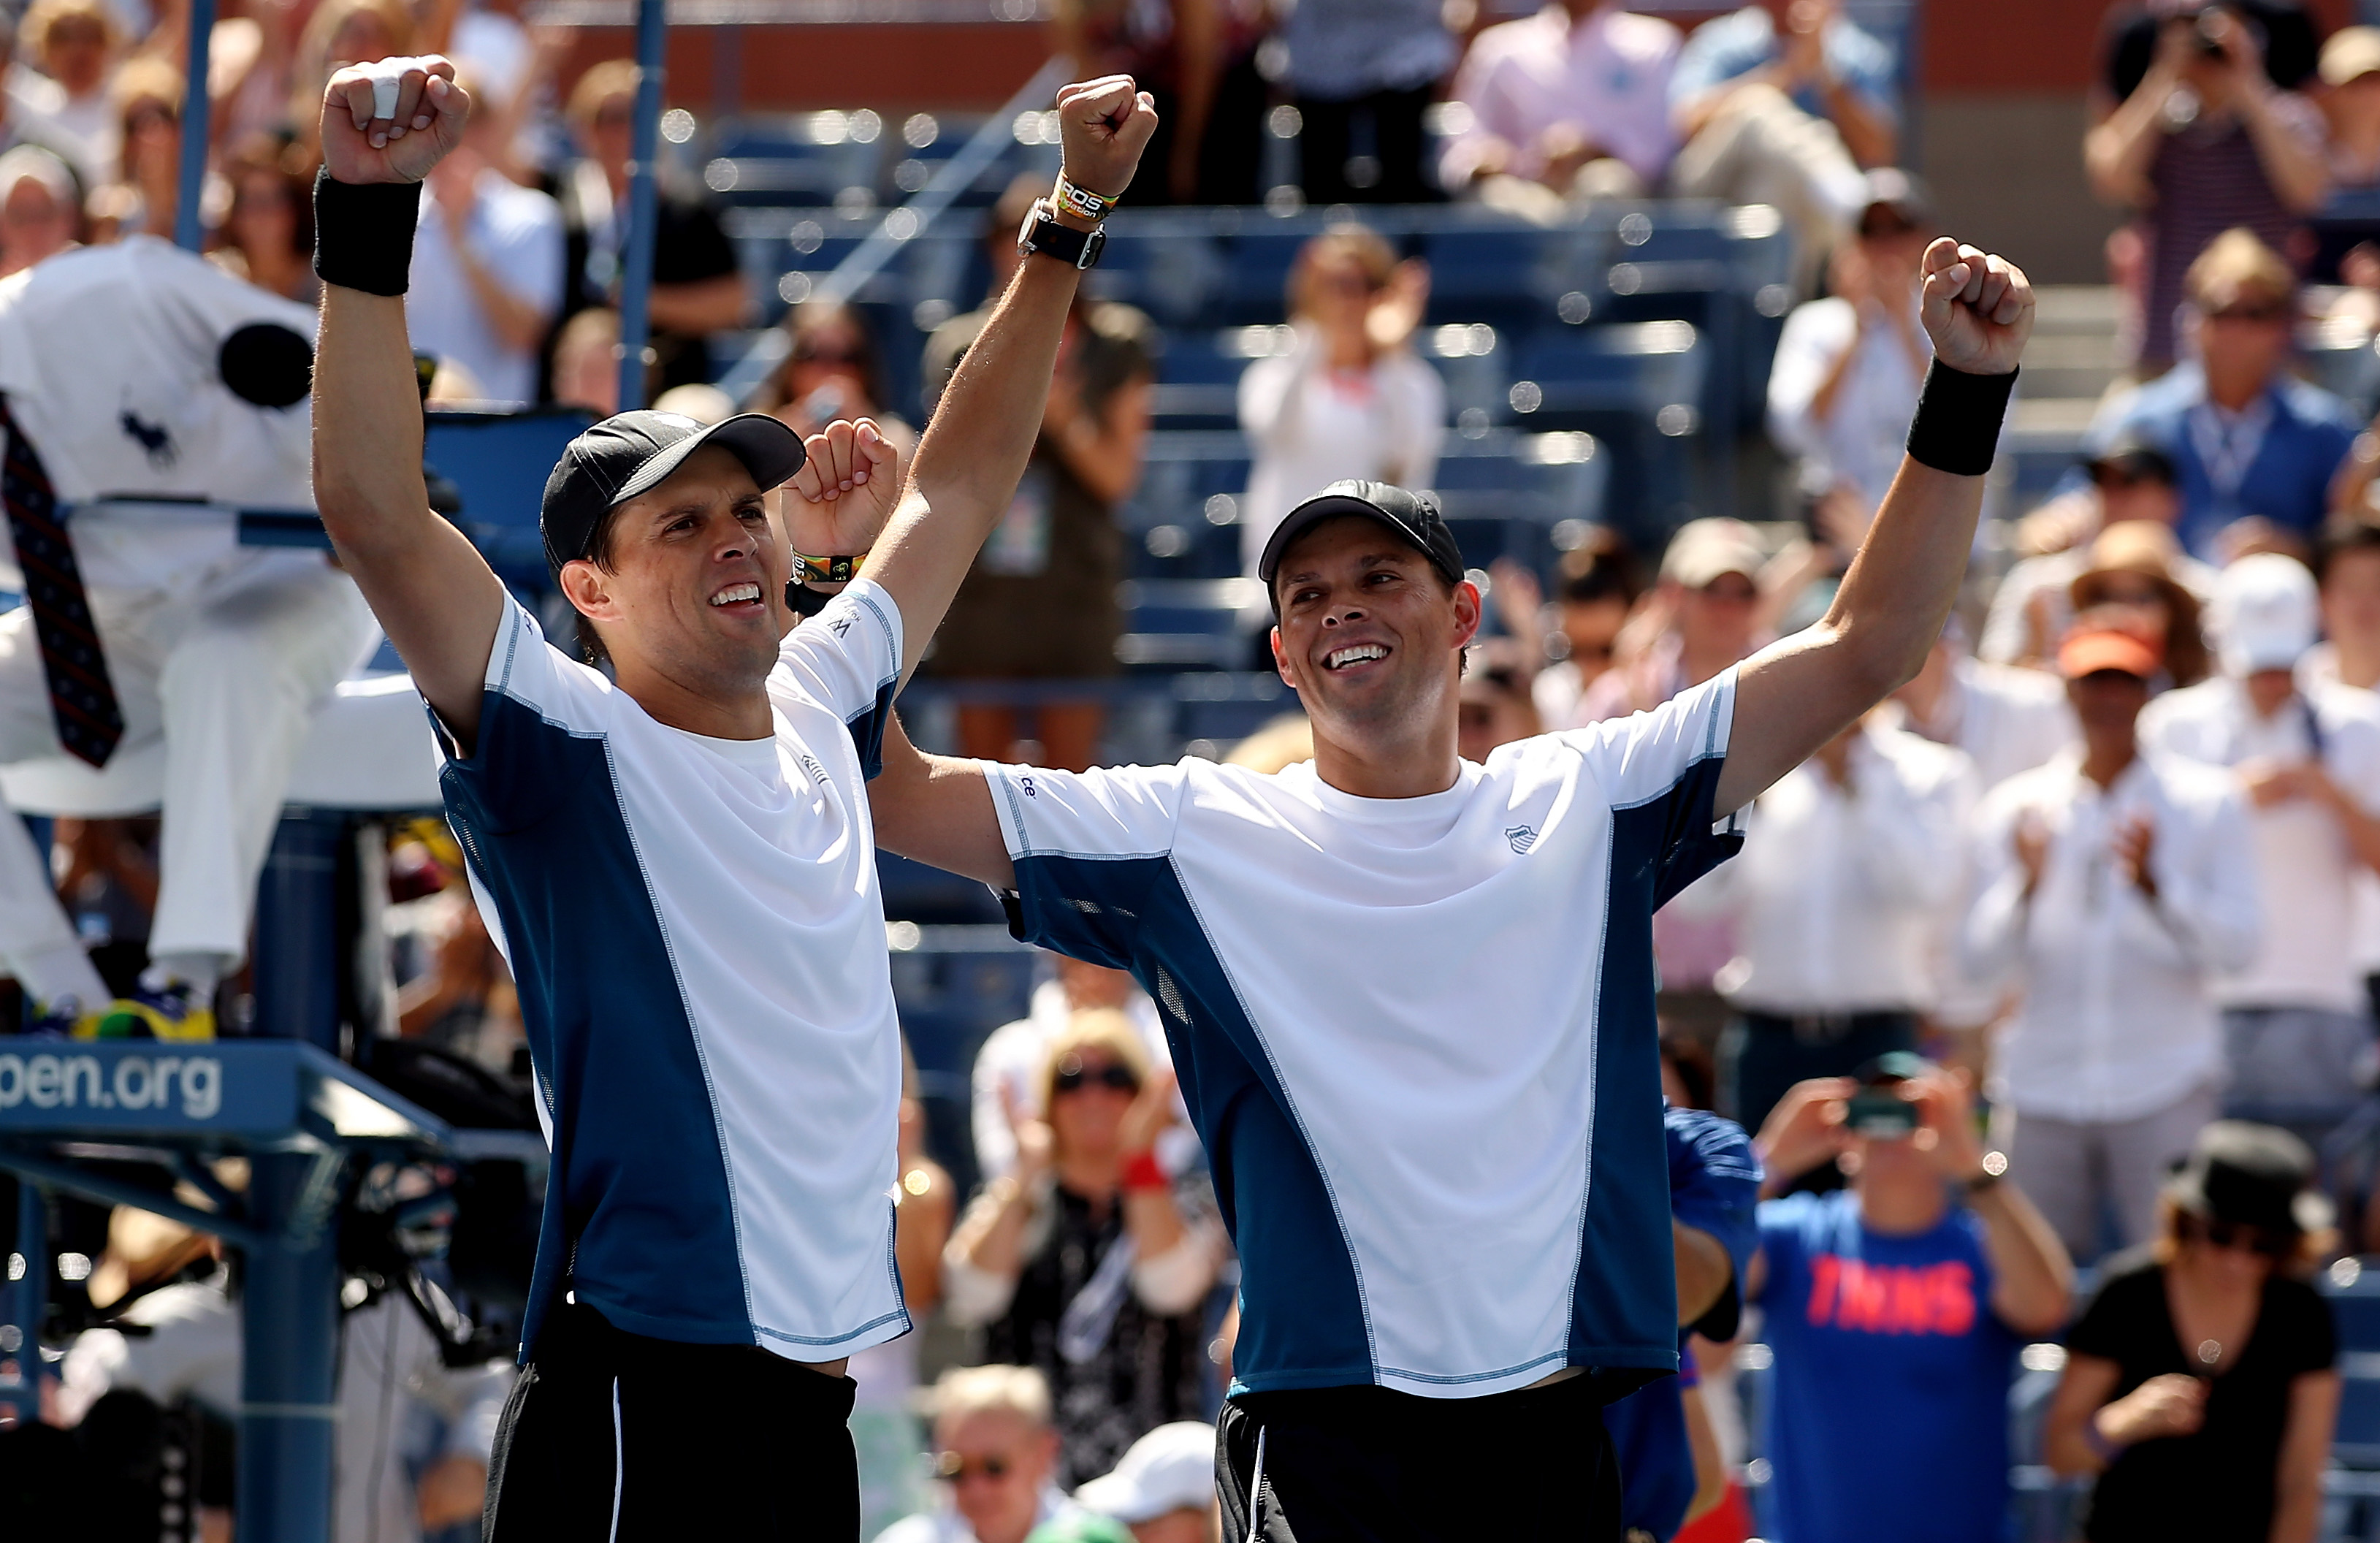 Twins and doubles partners Bob Bryan and Mike Bryan